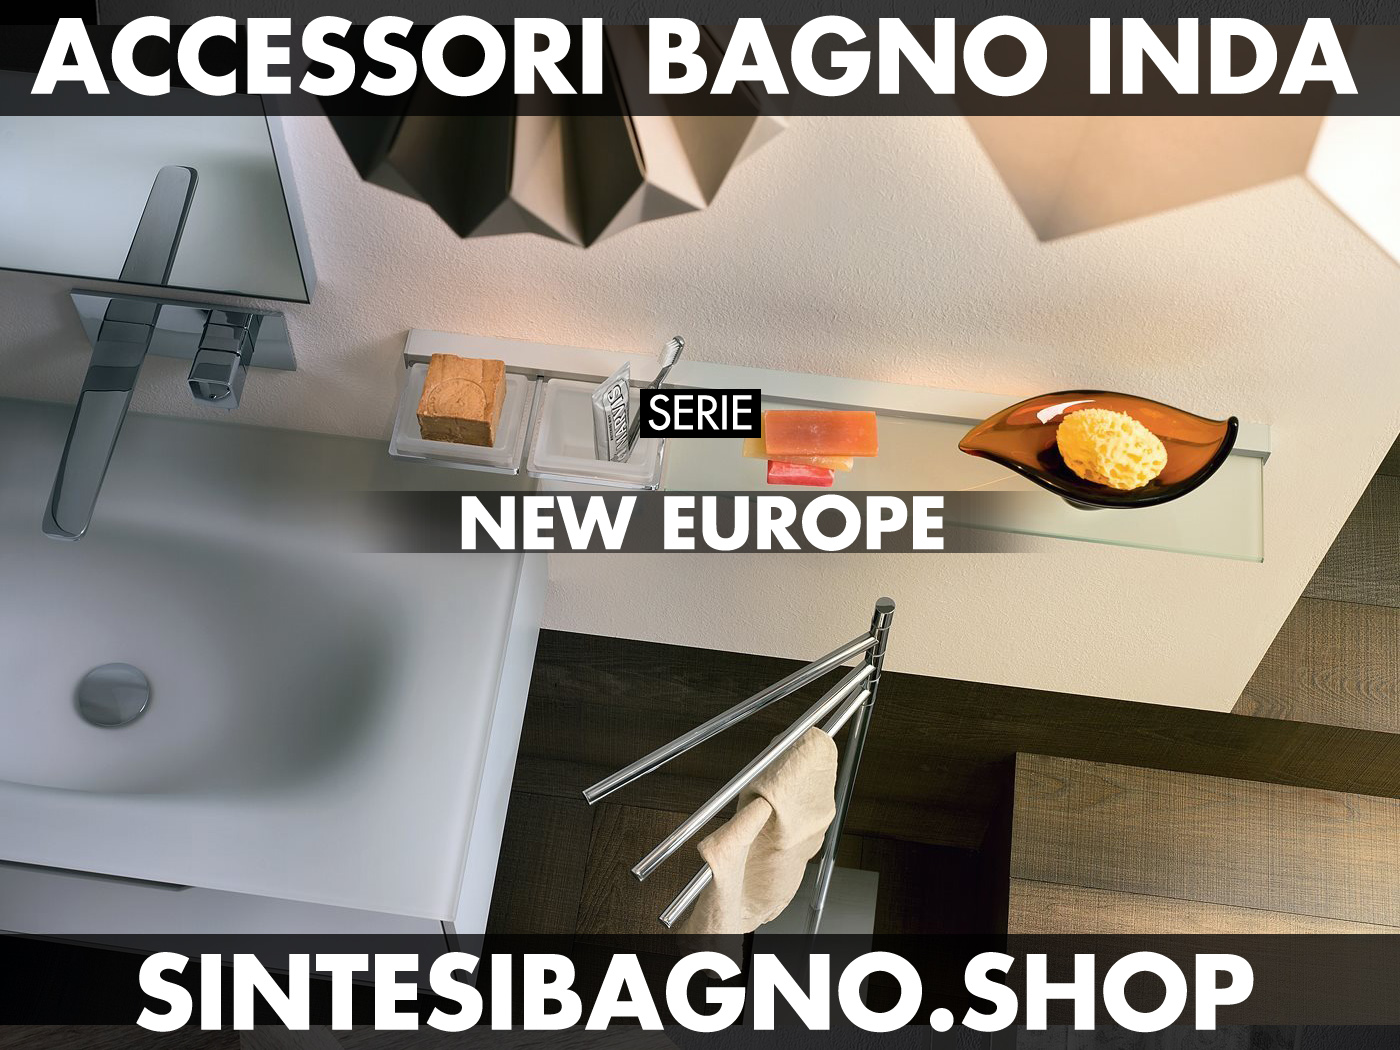 Accessori Bagno Inda serie NEW EUROPE